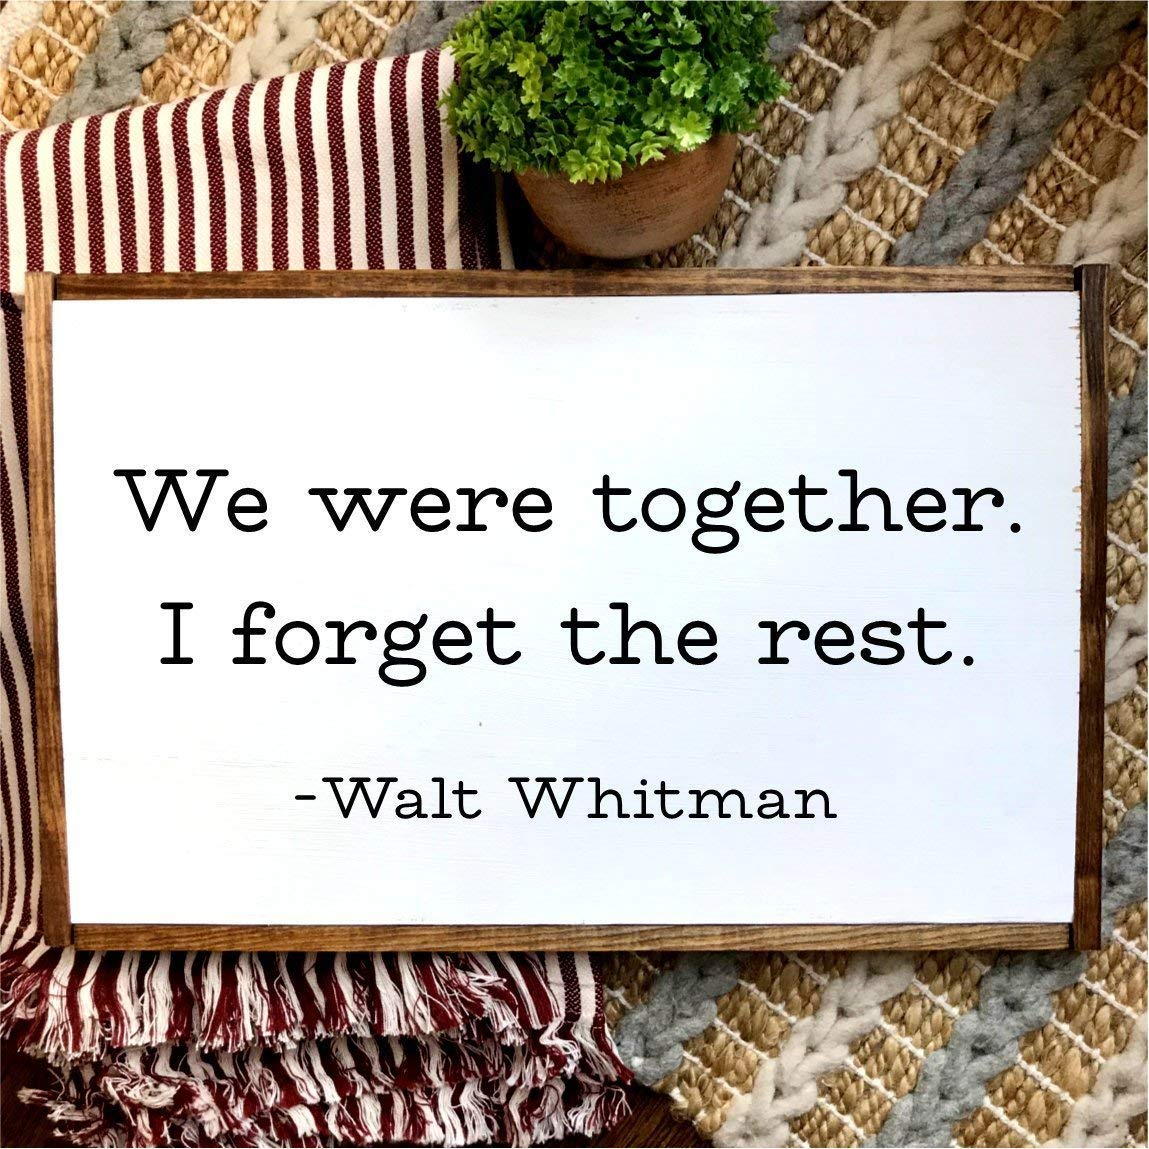 Amazon Com We Were Together I Forget The Rest Walt Whitman Quote Hand Painted Over Sized Wooden Sign Modern Farmhouse Style Fixer Upper Inspired Home Decor Handmade